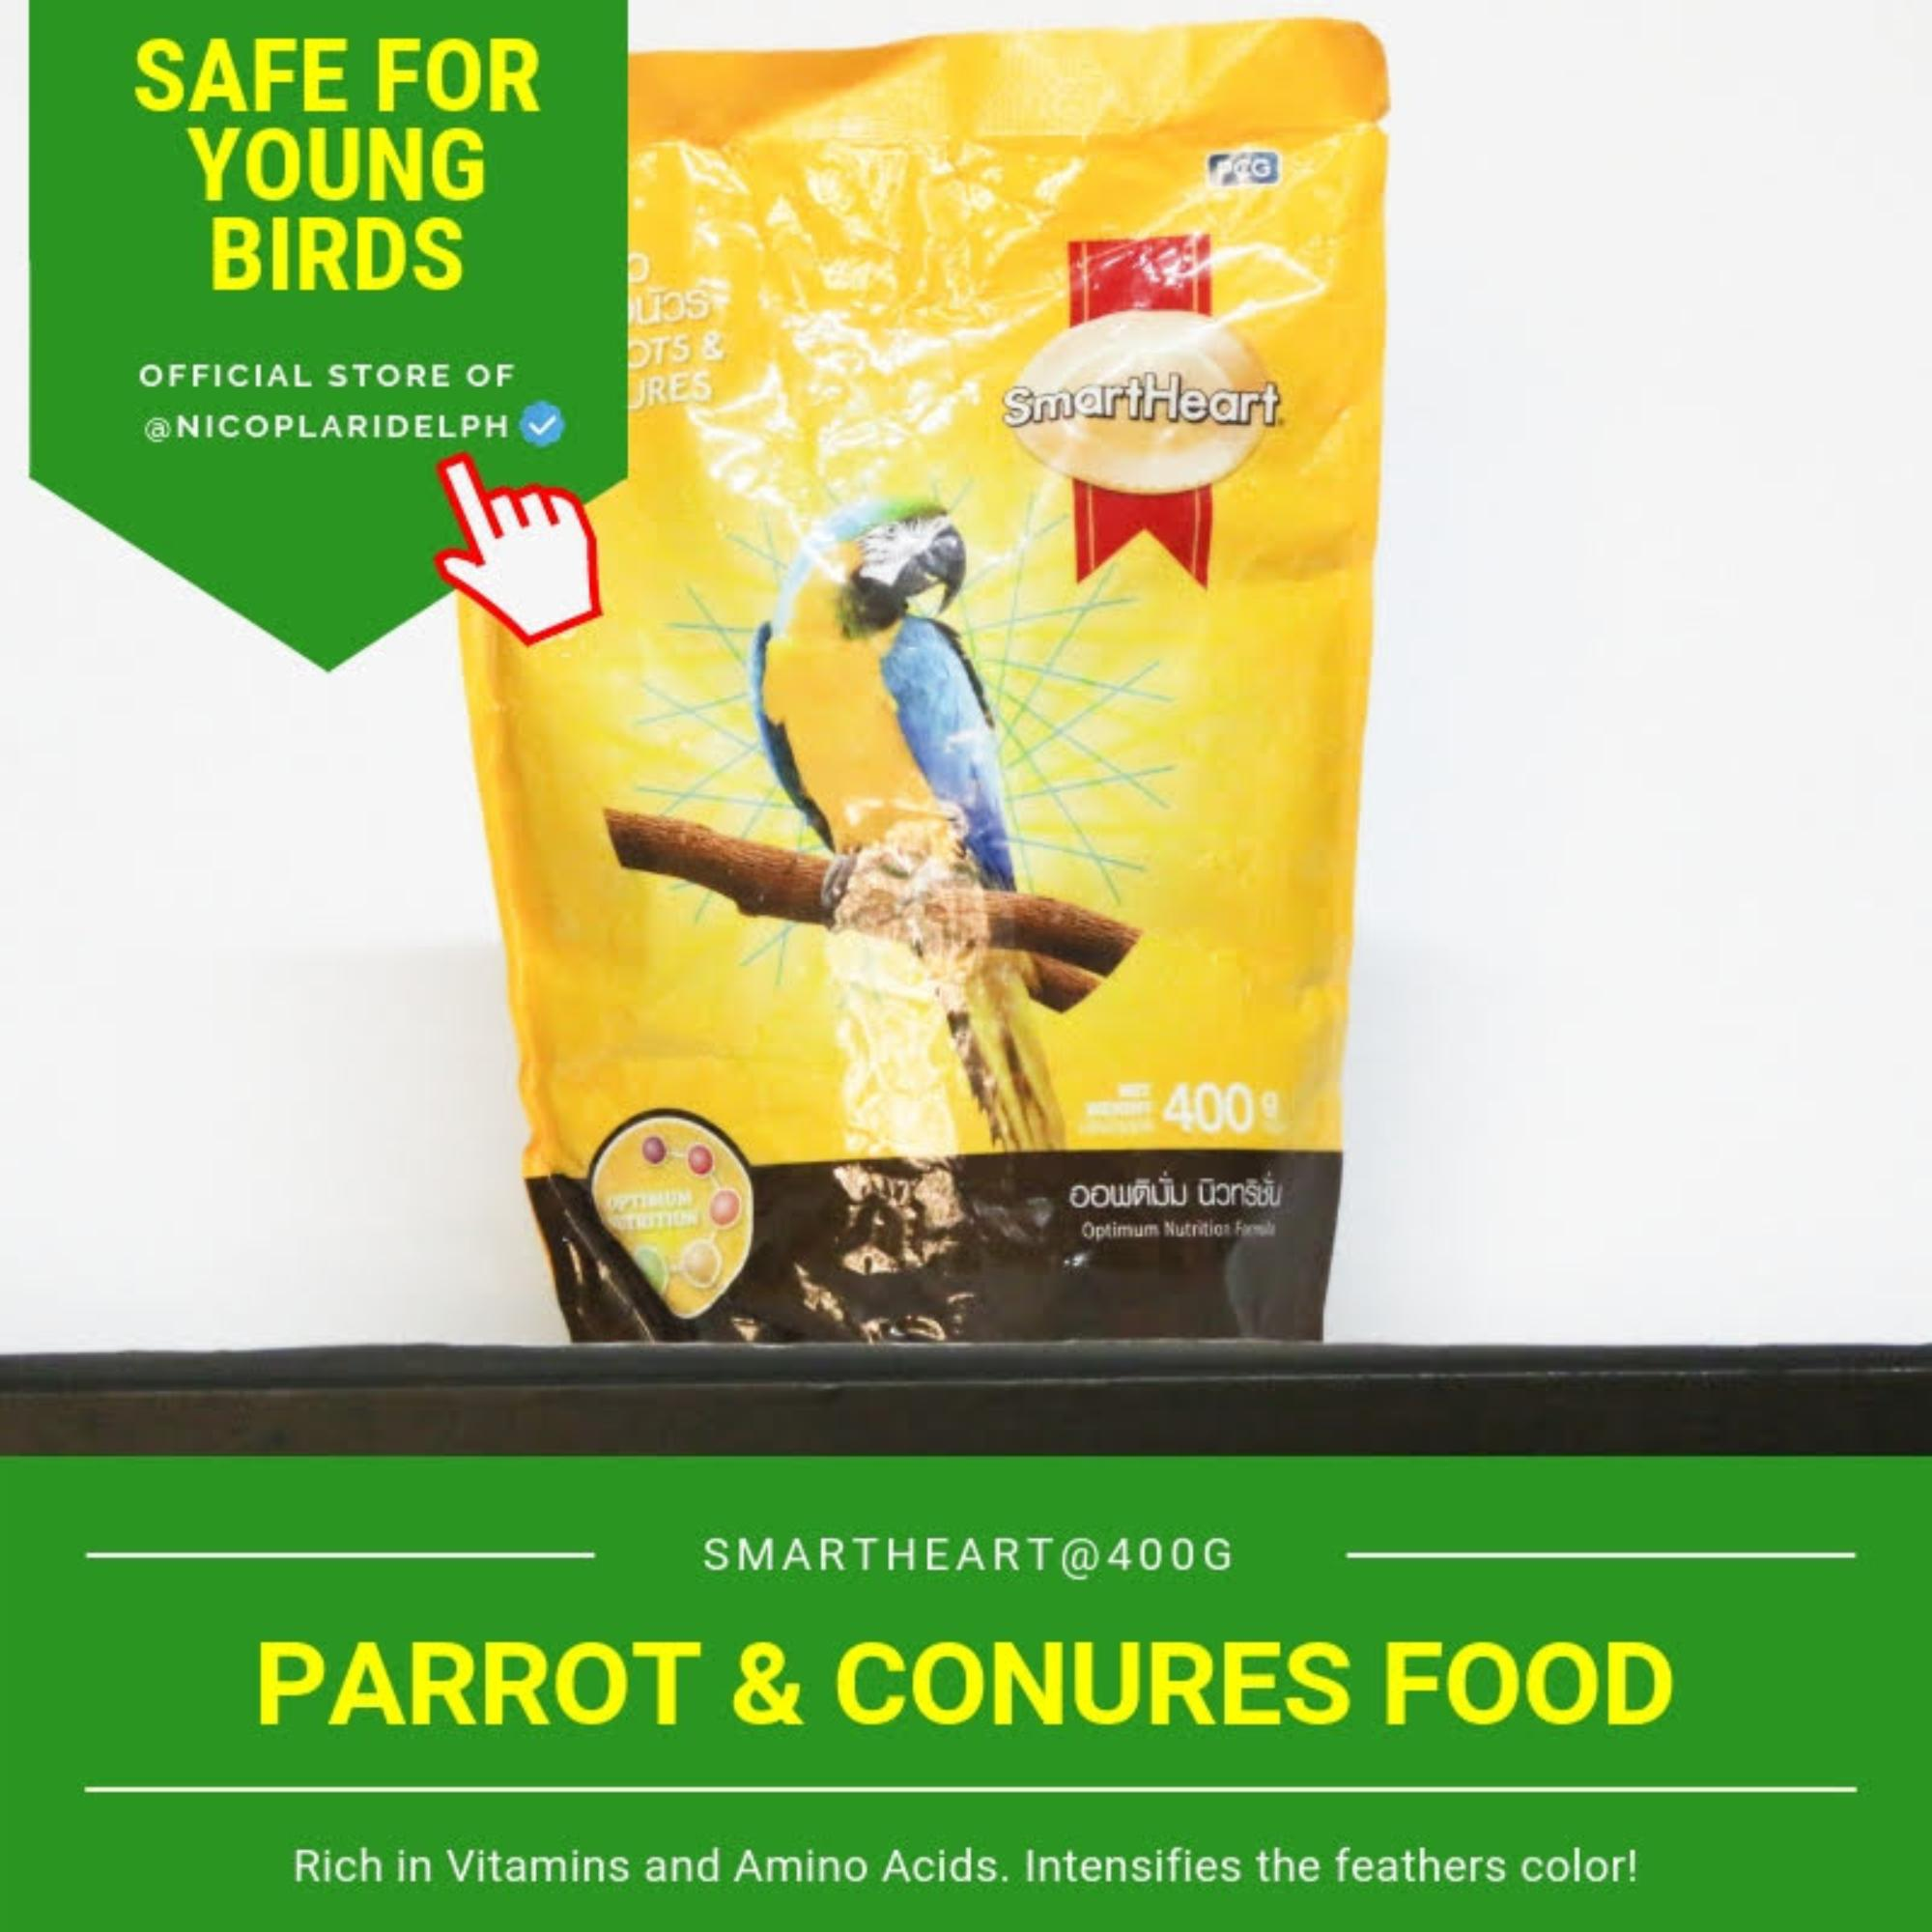 Smartheart Parrot And Conures Food (400g) By Nicoplaridelph.